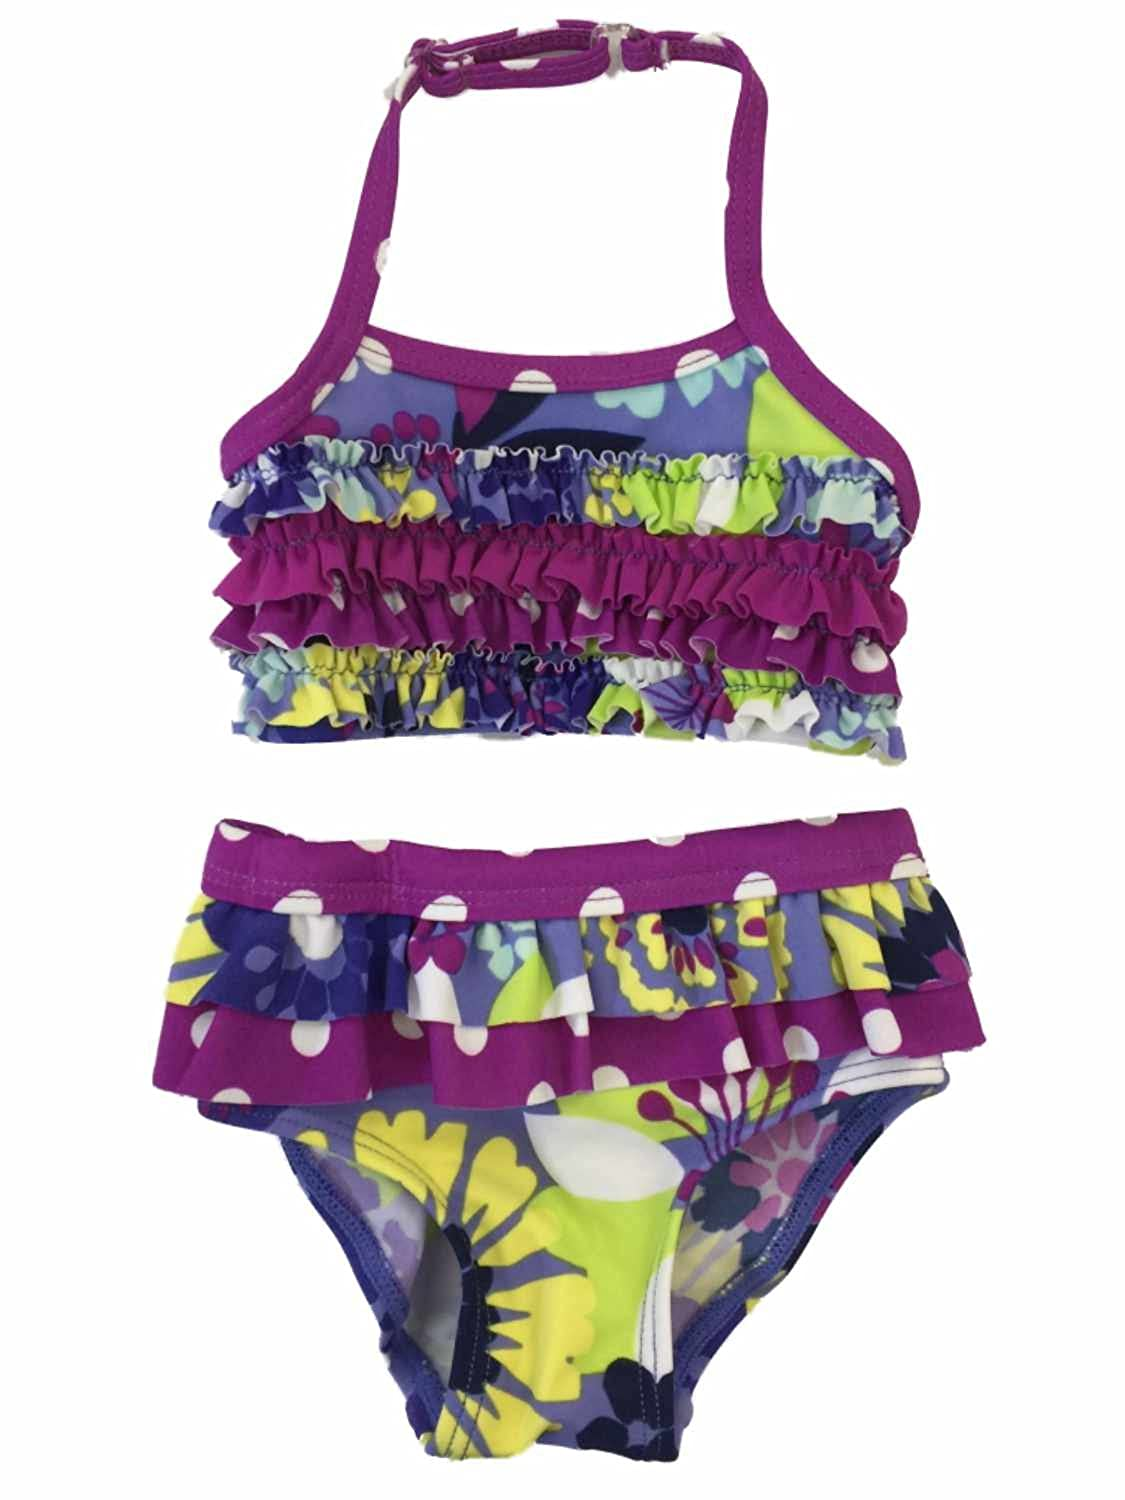 Infant Girls Purple Floral Ruched 2 Piece Bikini Swimming /& Bathing Suit Newborn